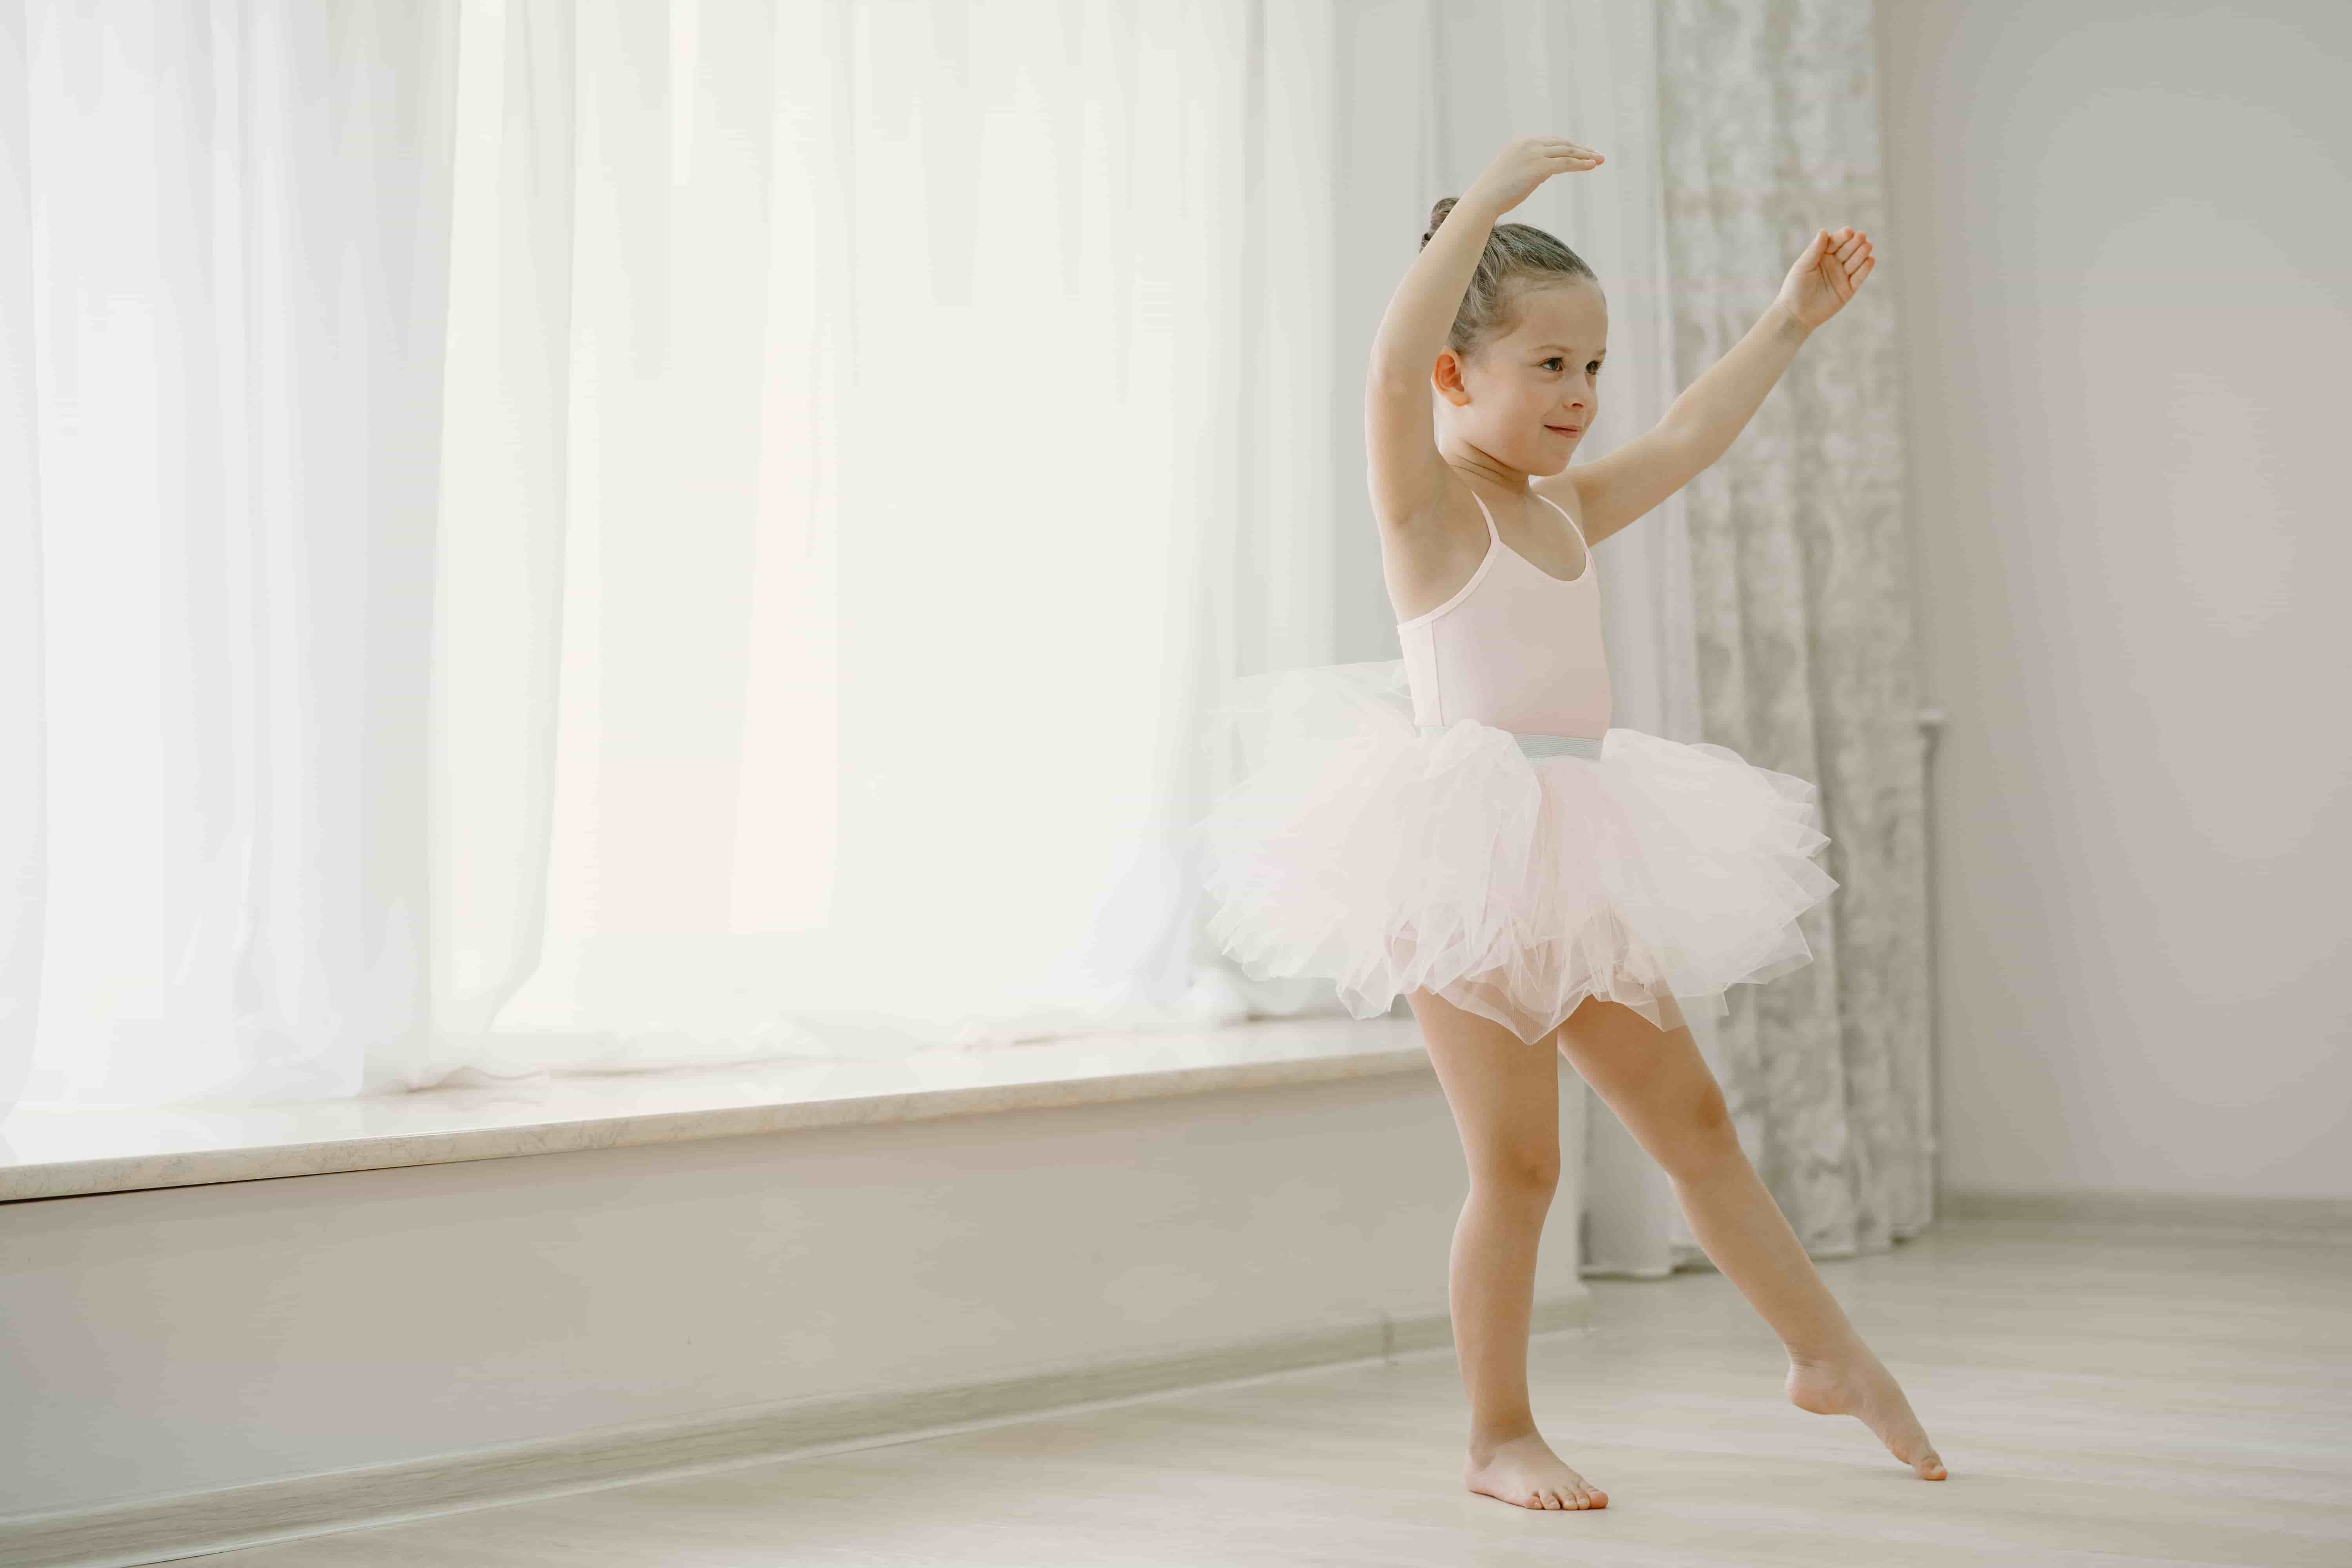 cute-little-ballerinas-pink-ballet-costume-child-pointe-shoes-is-dancing-room-kid-dance-class-min